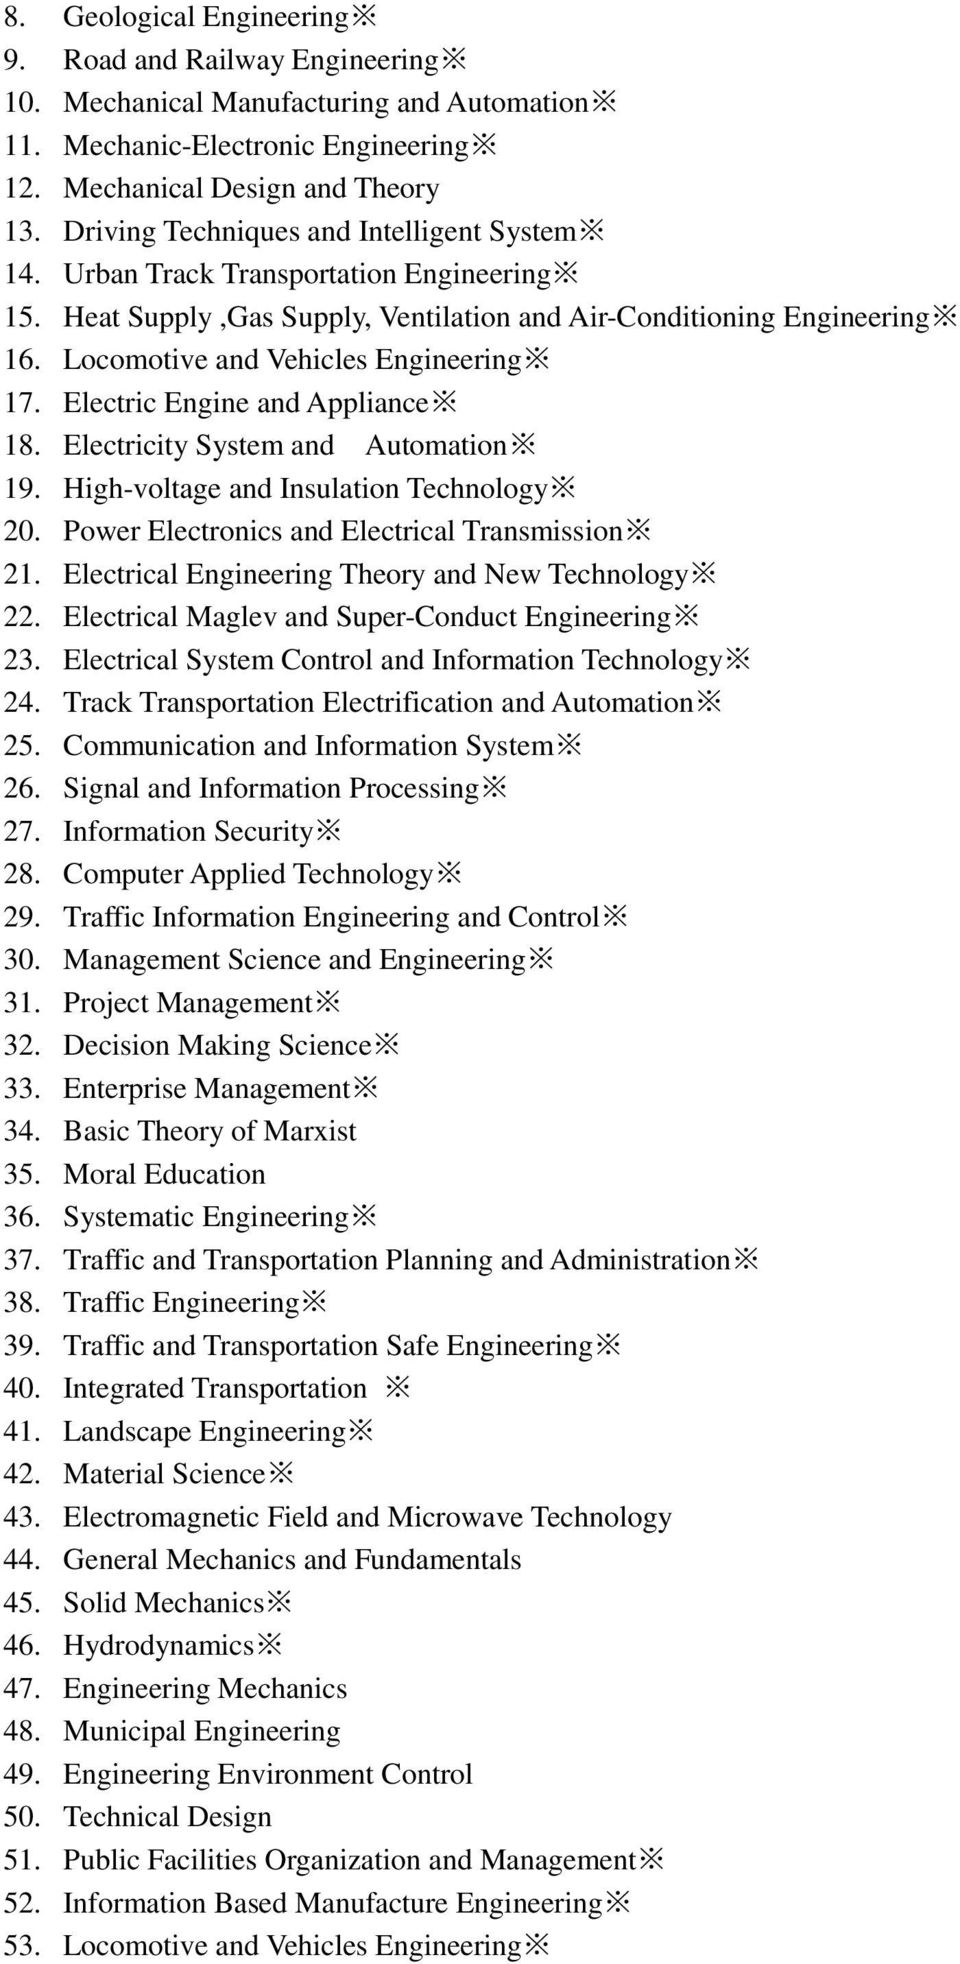 Locomotive and Vehicles Engineering 17. Electric Engine and Appliance 18. Electricity System and Automation 19. High-voltage and Insulation Technology 20.